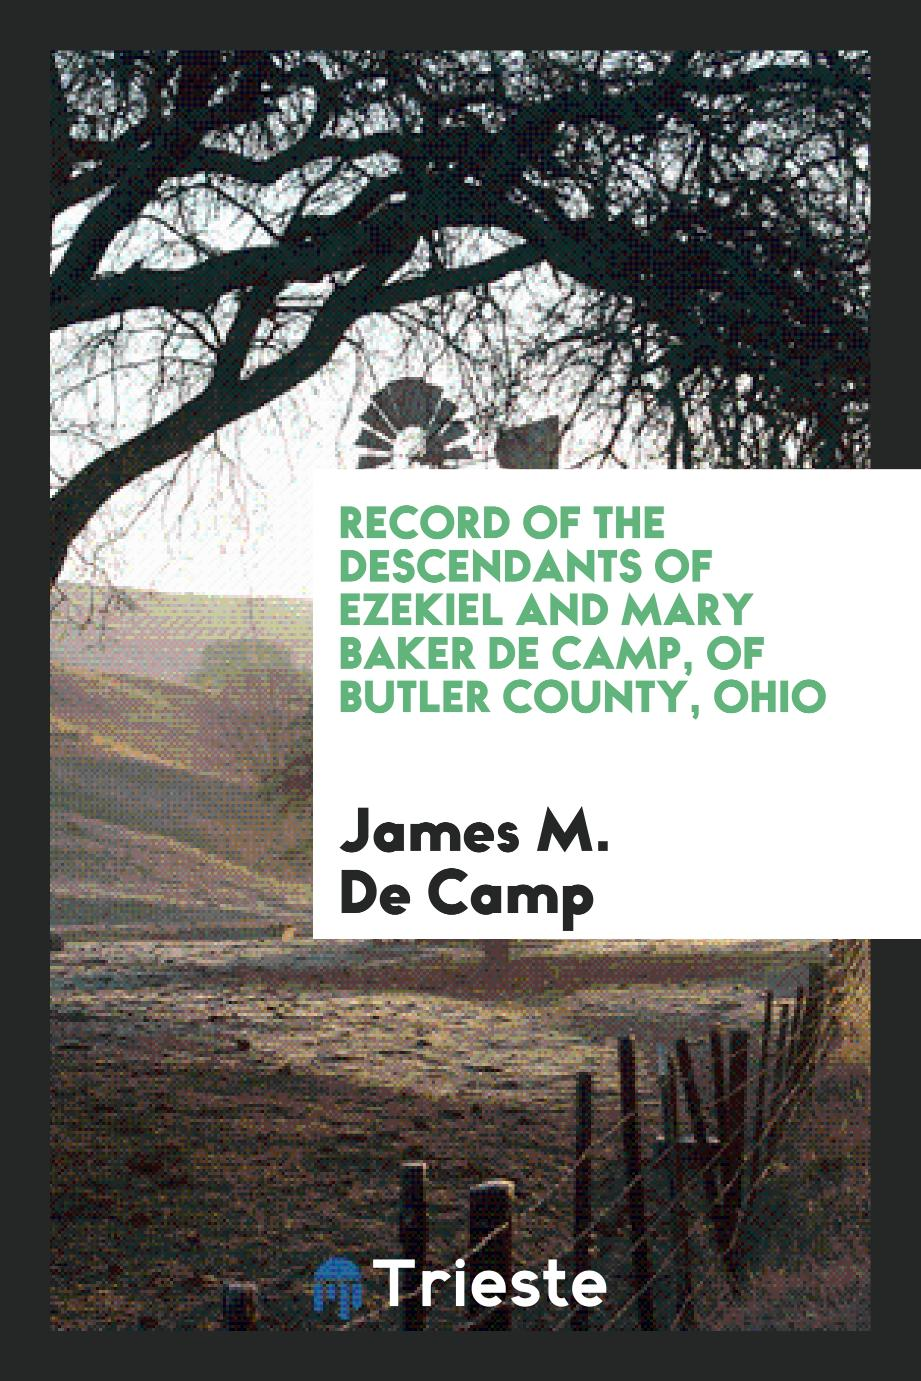 Record of the Descendants of Ezekiel and Mary Baker De Camp, of Butler County, Ohio